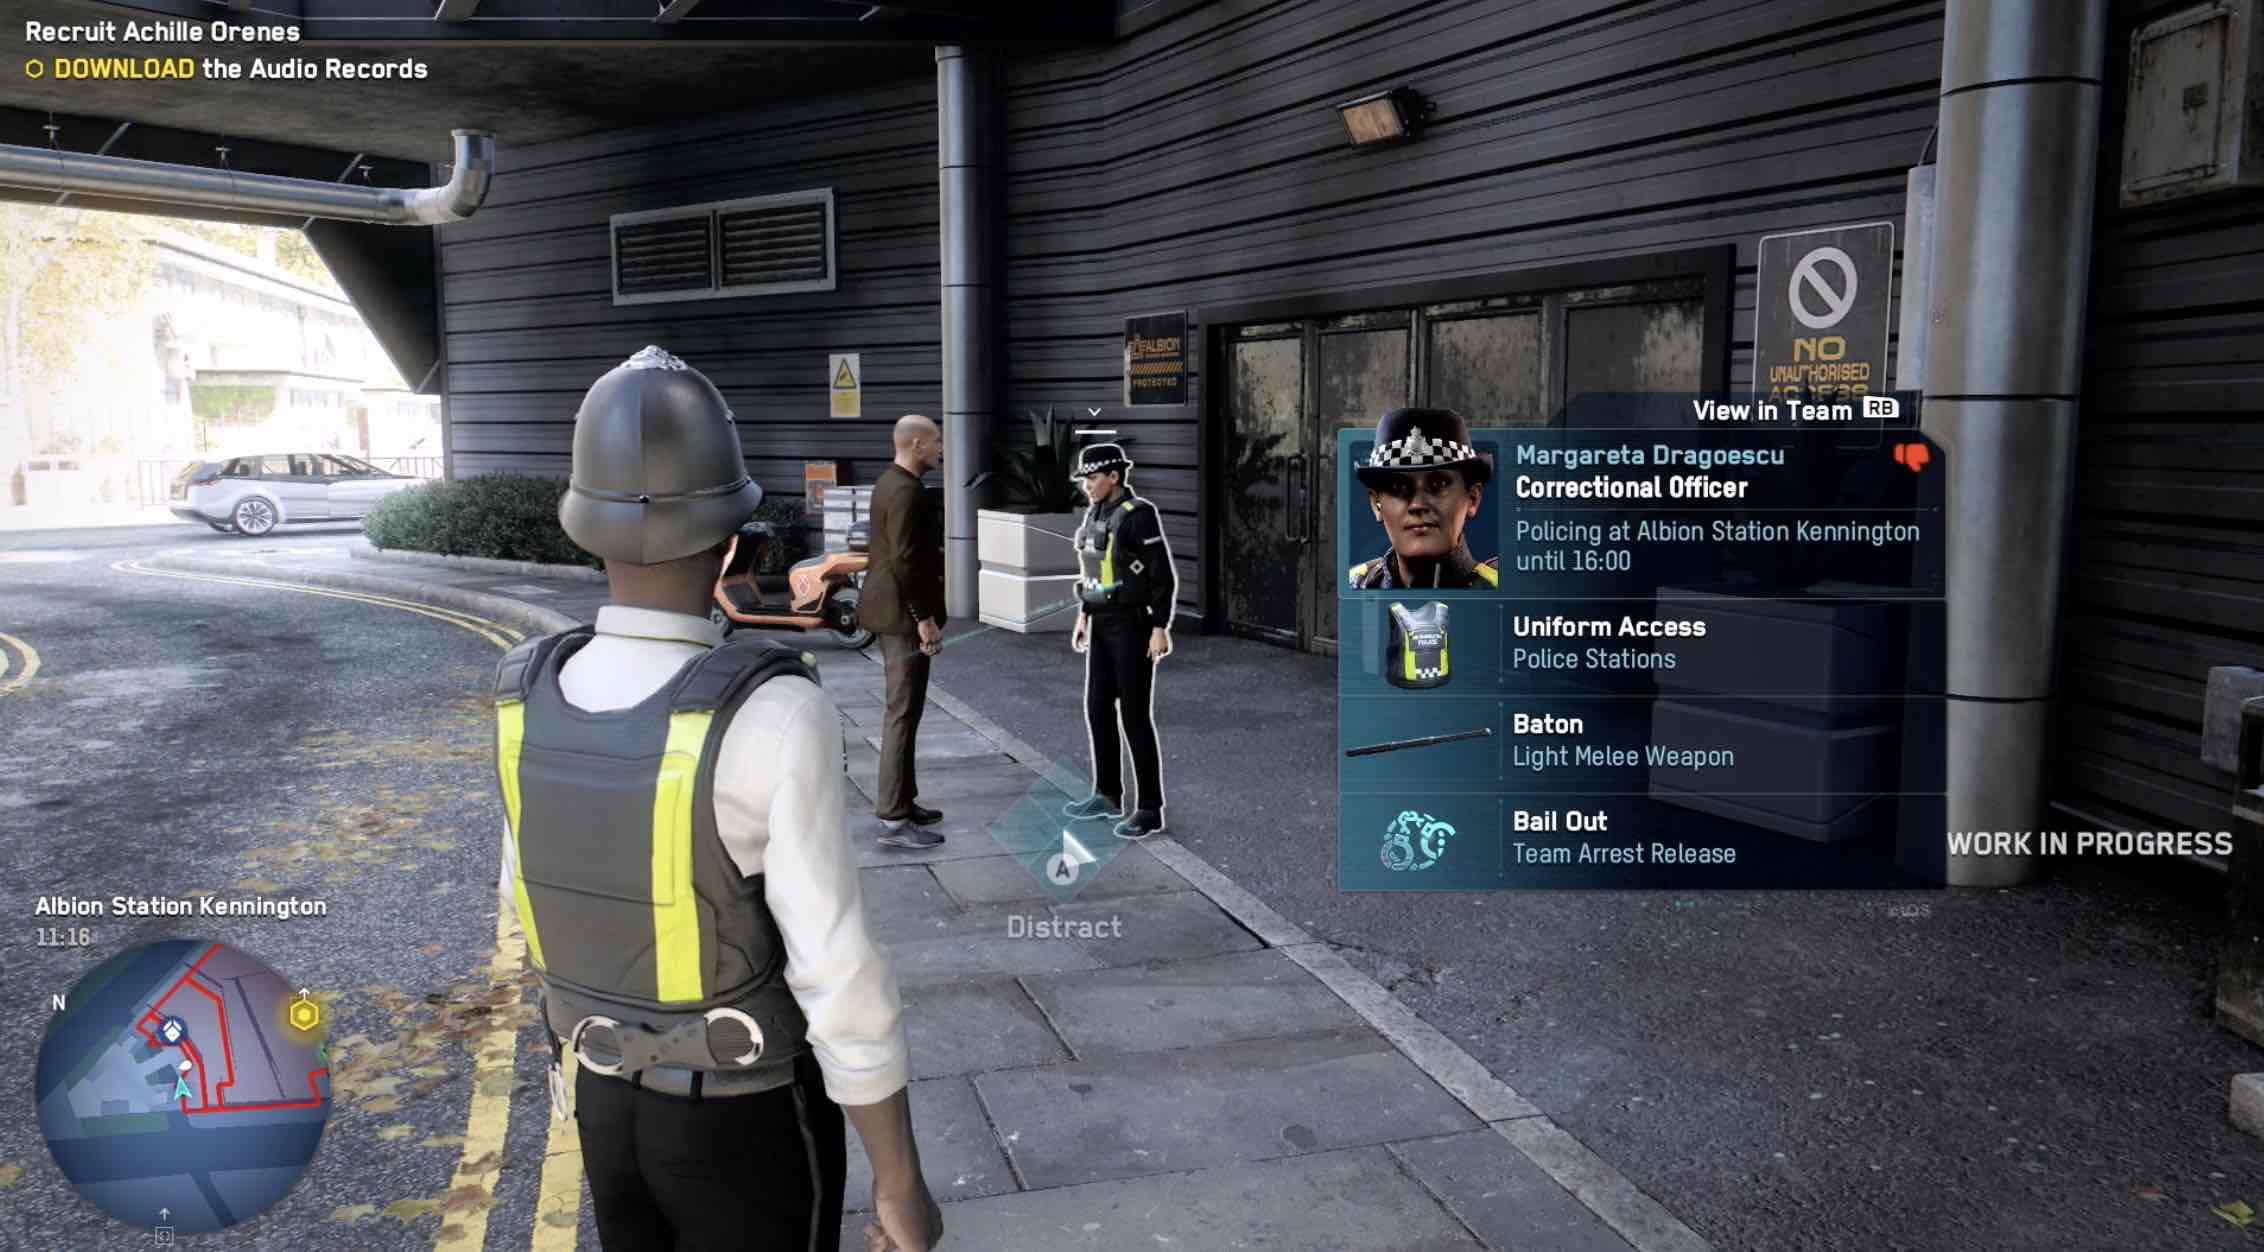 watch-dogs-legion-images-have-been-leaked.jpg